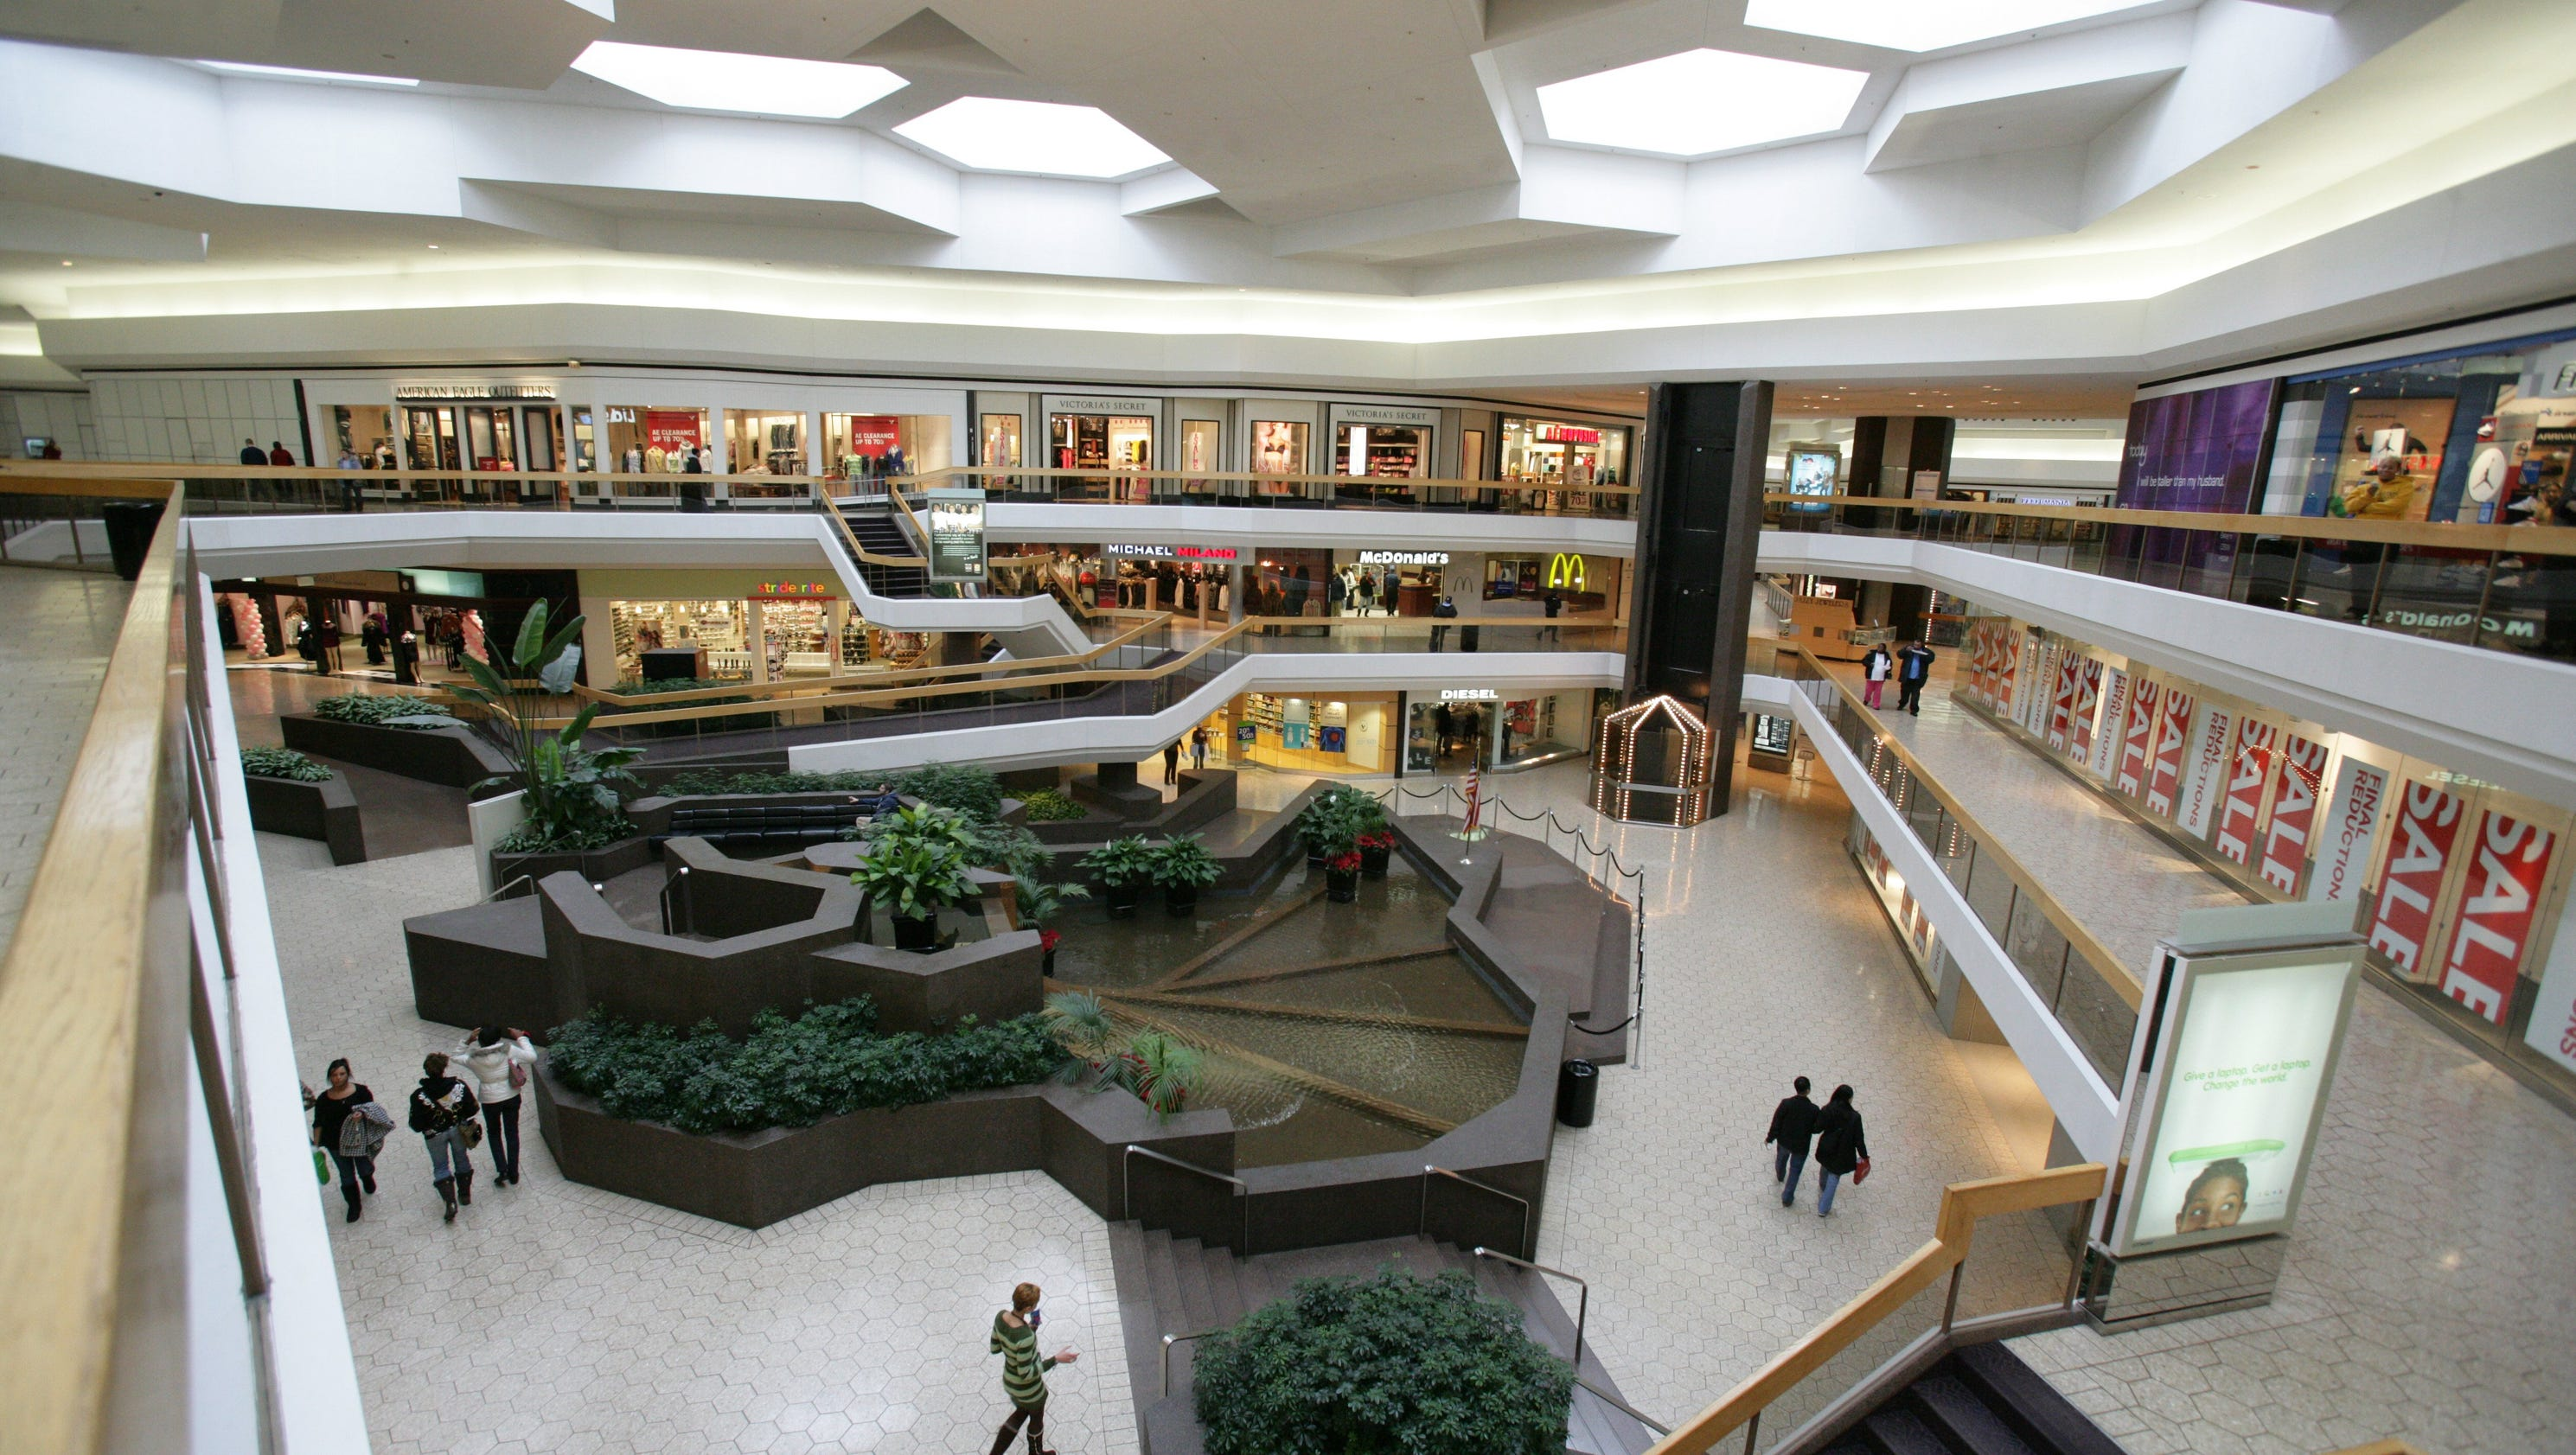 Fairlane Town Center Reopens After Shots Fired U M